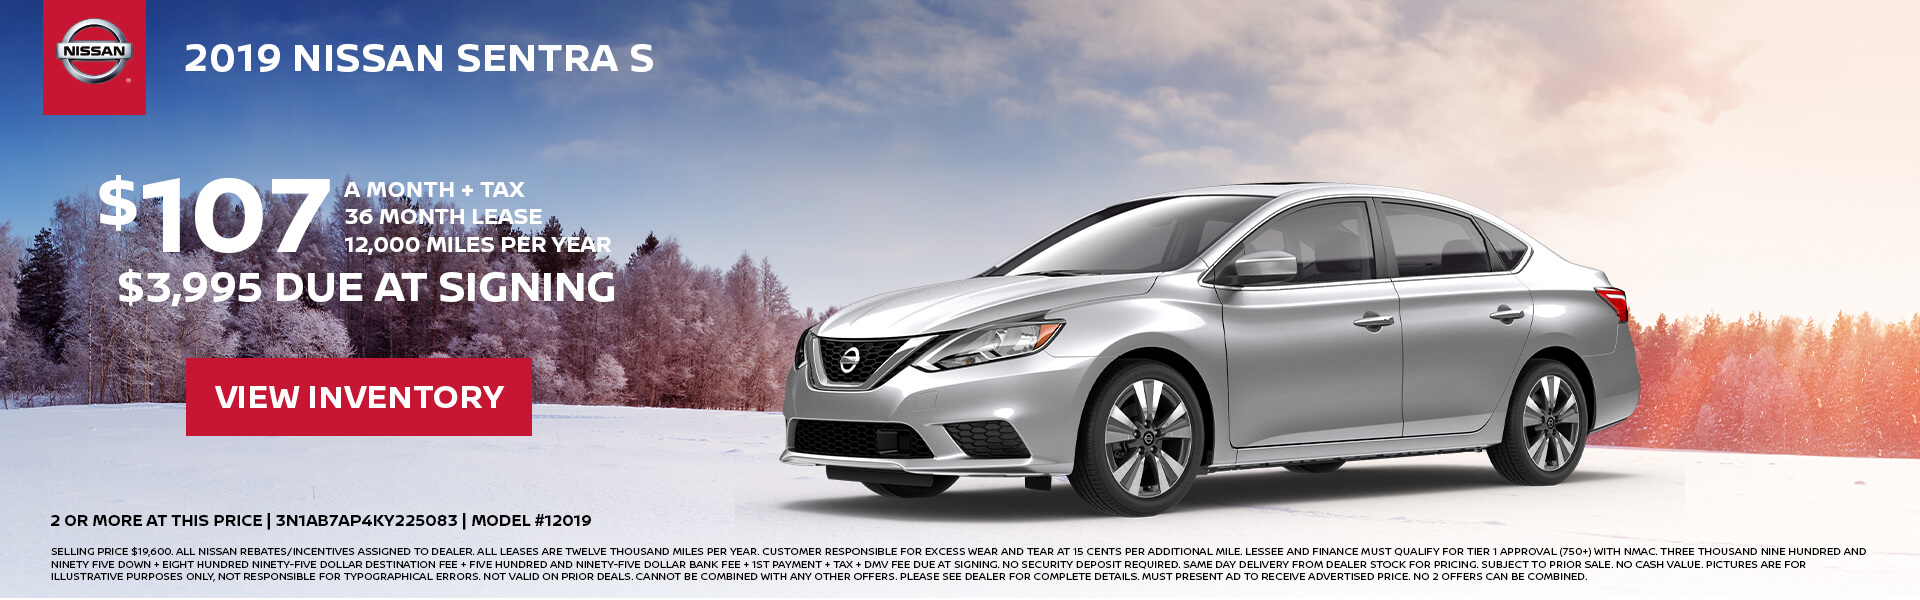 New Used Nissan Dealer Serving Long Island In Patchogue Ny